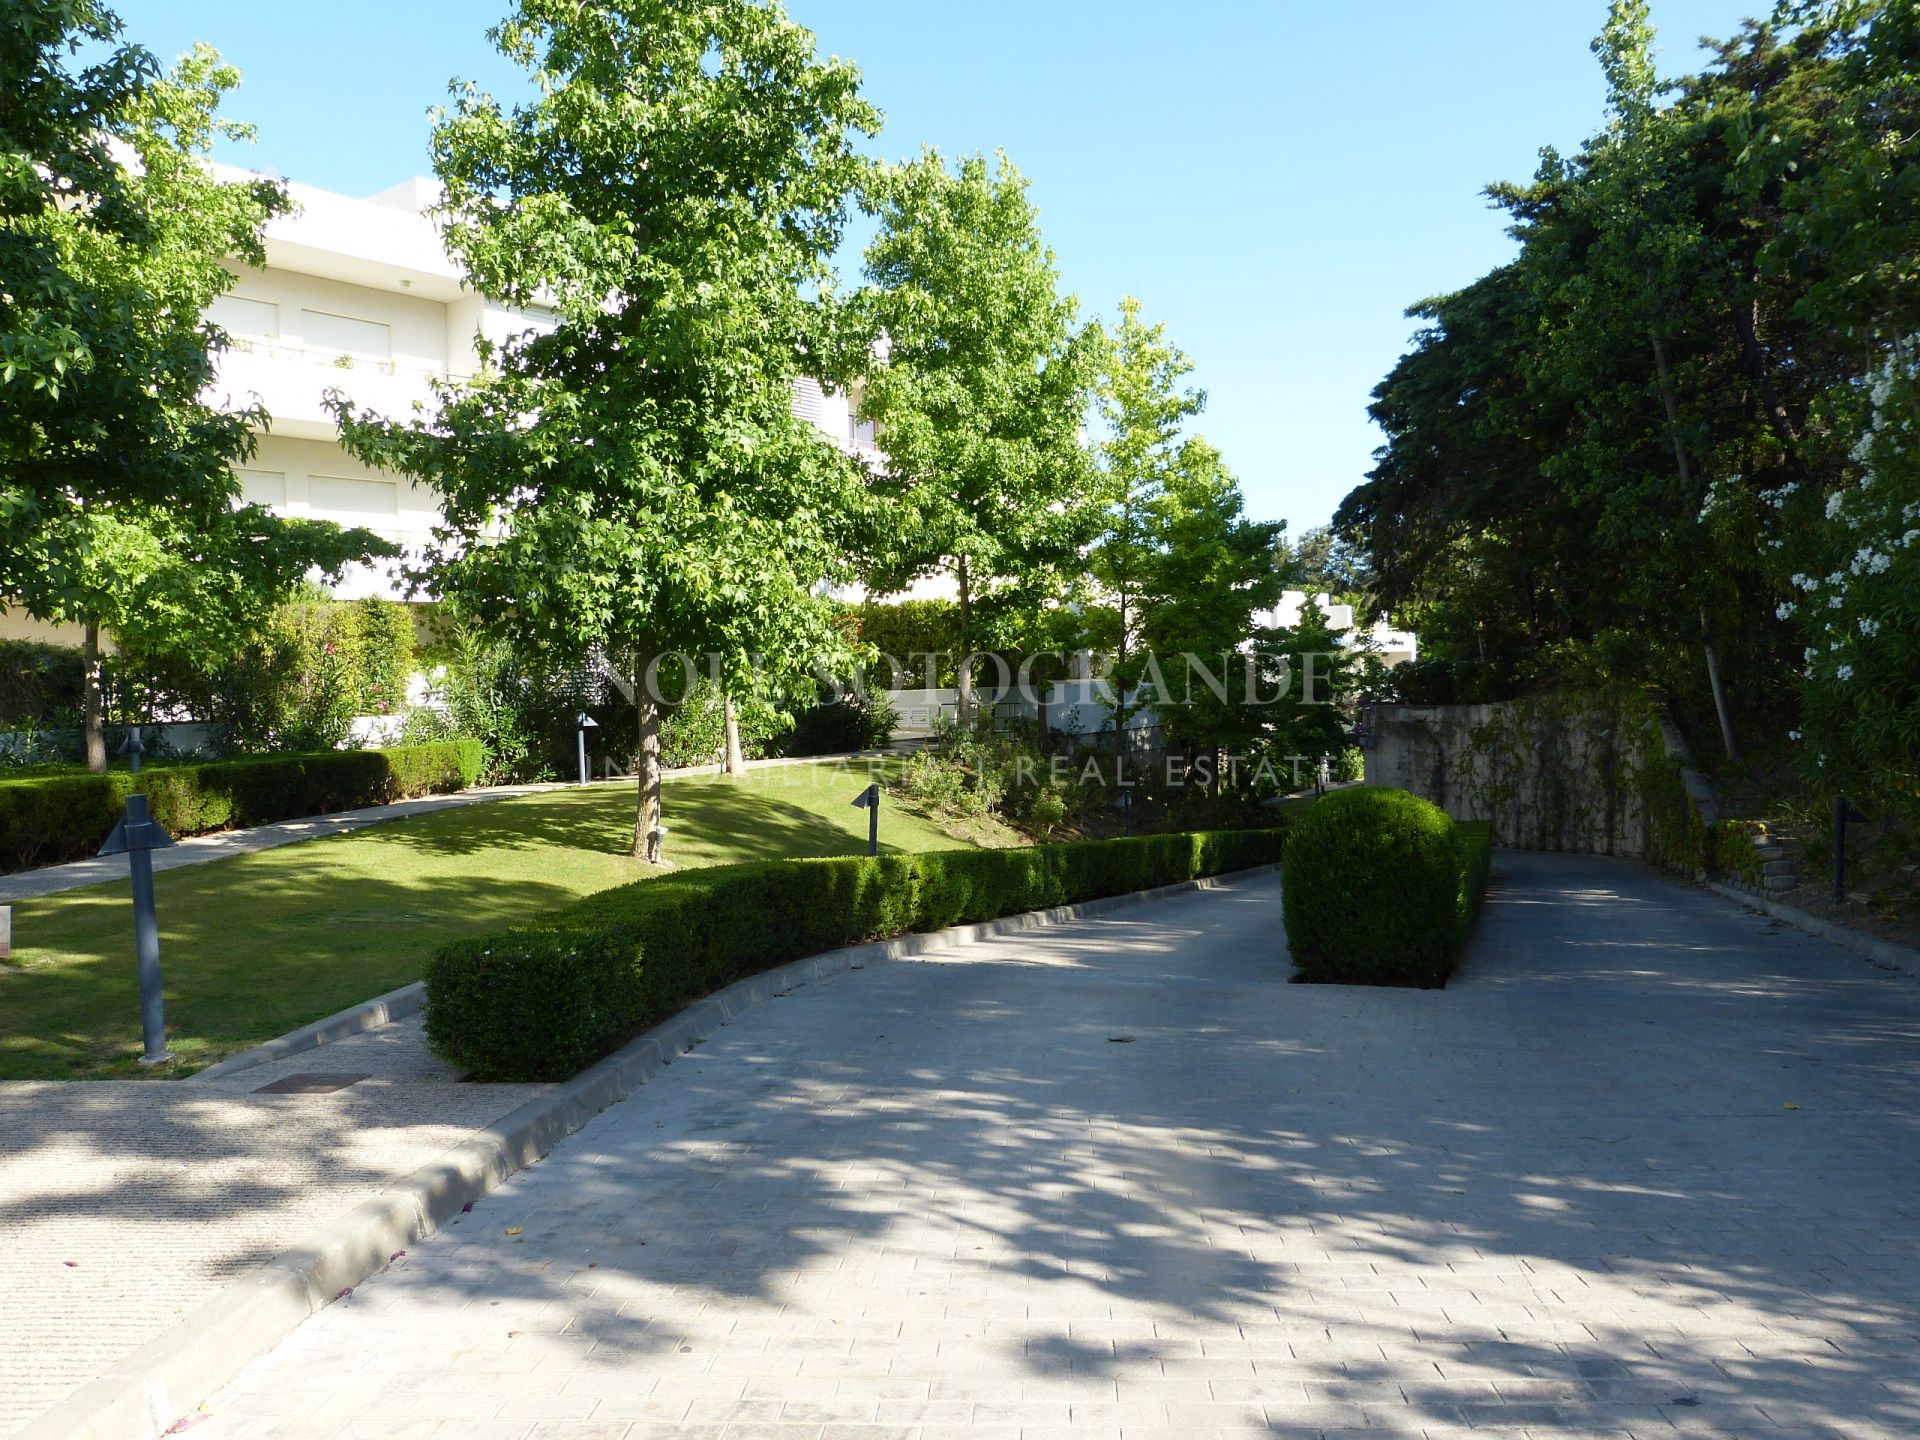 Large elegant apartment for sale in Polo Gardens, Sotogrande